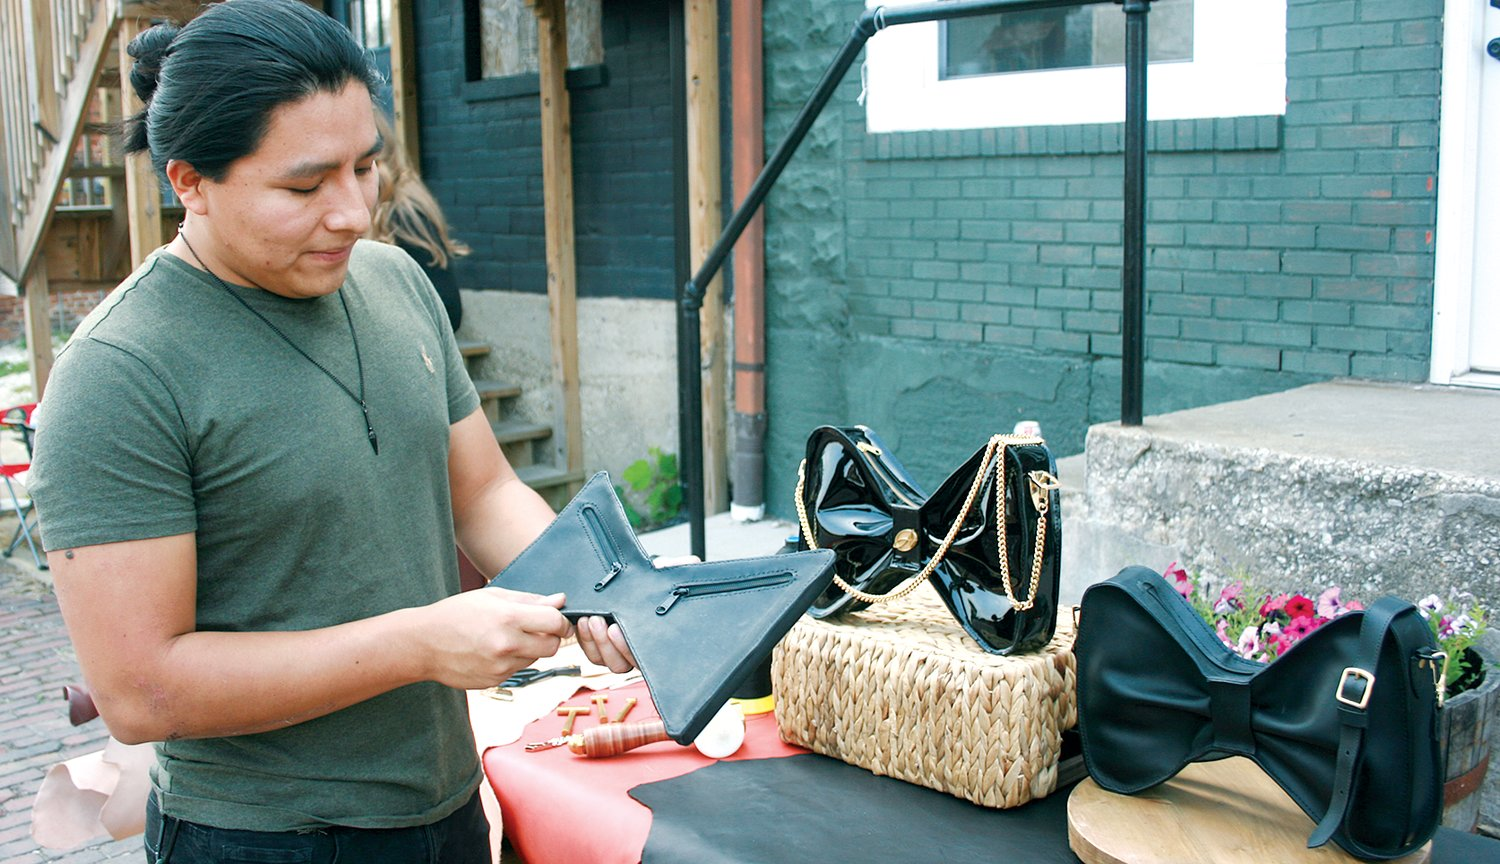 Alexandrea, a company that sells high-end handbags, will open a storefront in downtown Hillsboro. Owner Alex Haxel personally designs the bags her company will sell, and plans to debut her new line later this year. Leatherworker Edgar Gua (above) shows an early prototype of the Bow Bag. The finished prototype can be viewed at left, in the background of the photo.